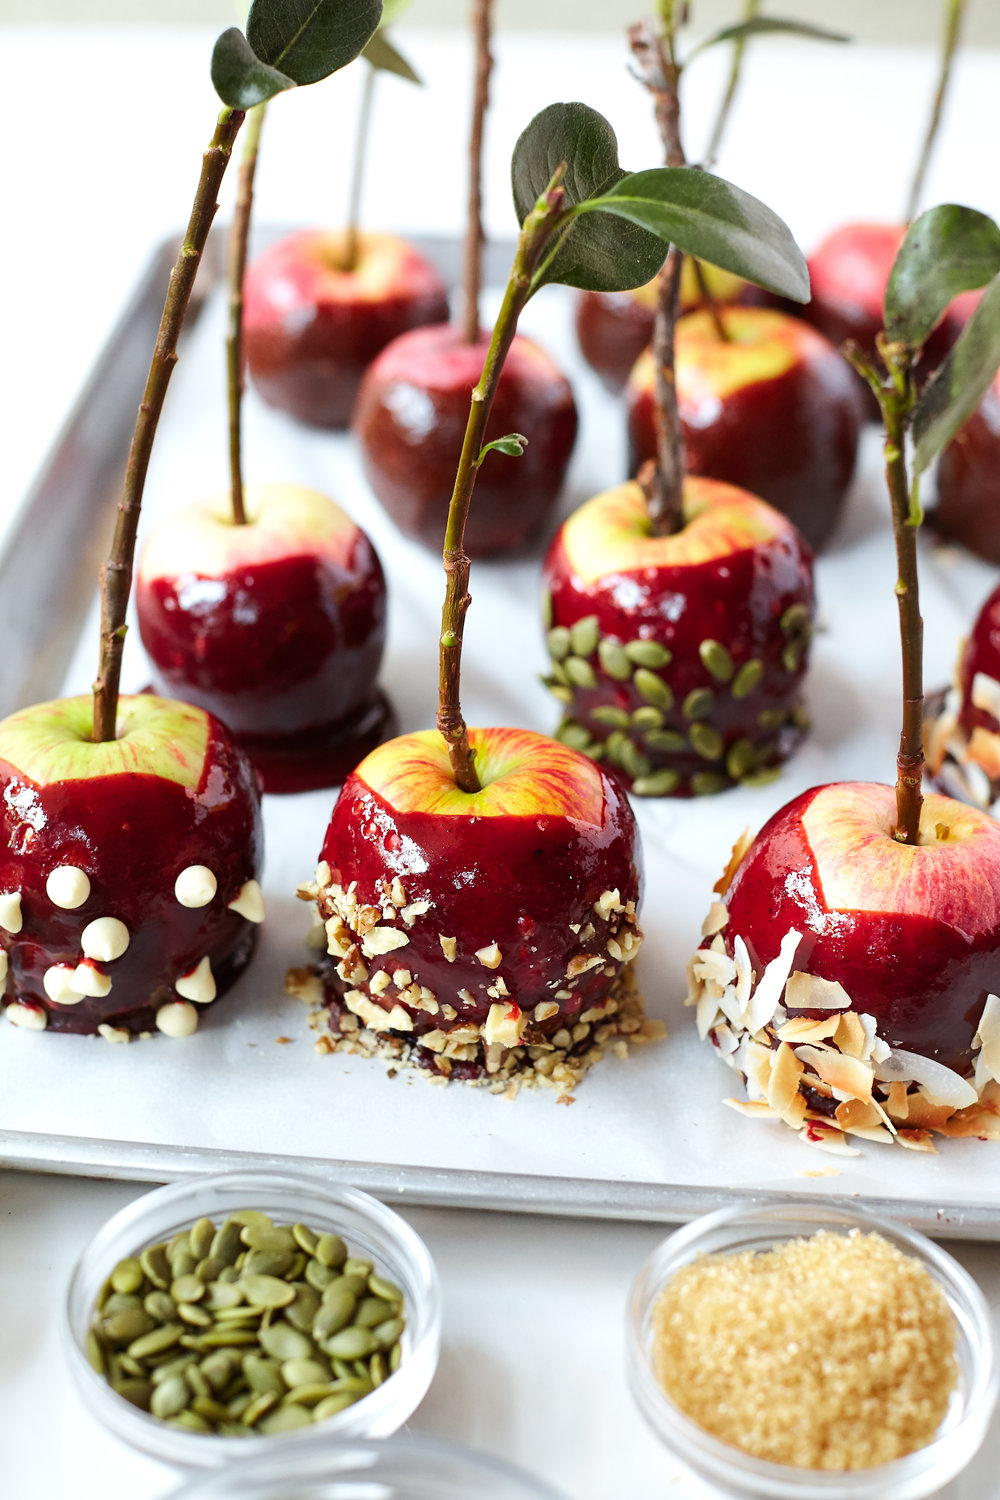 BEET CARAMEL APPLES